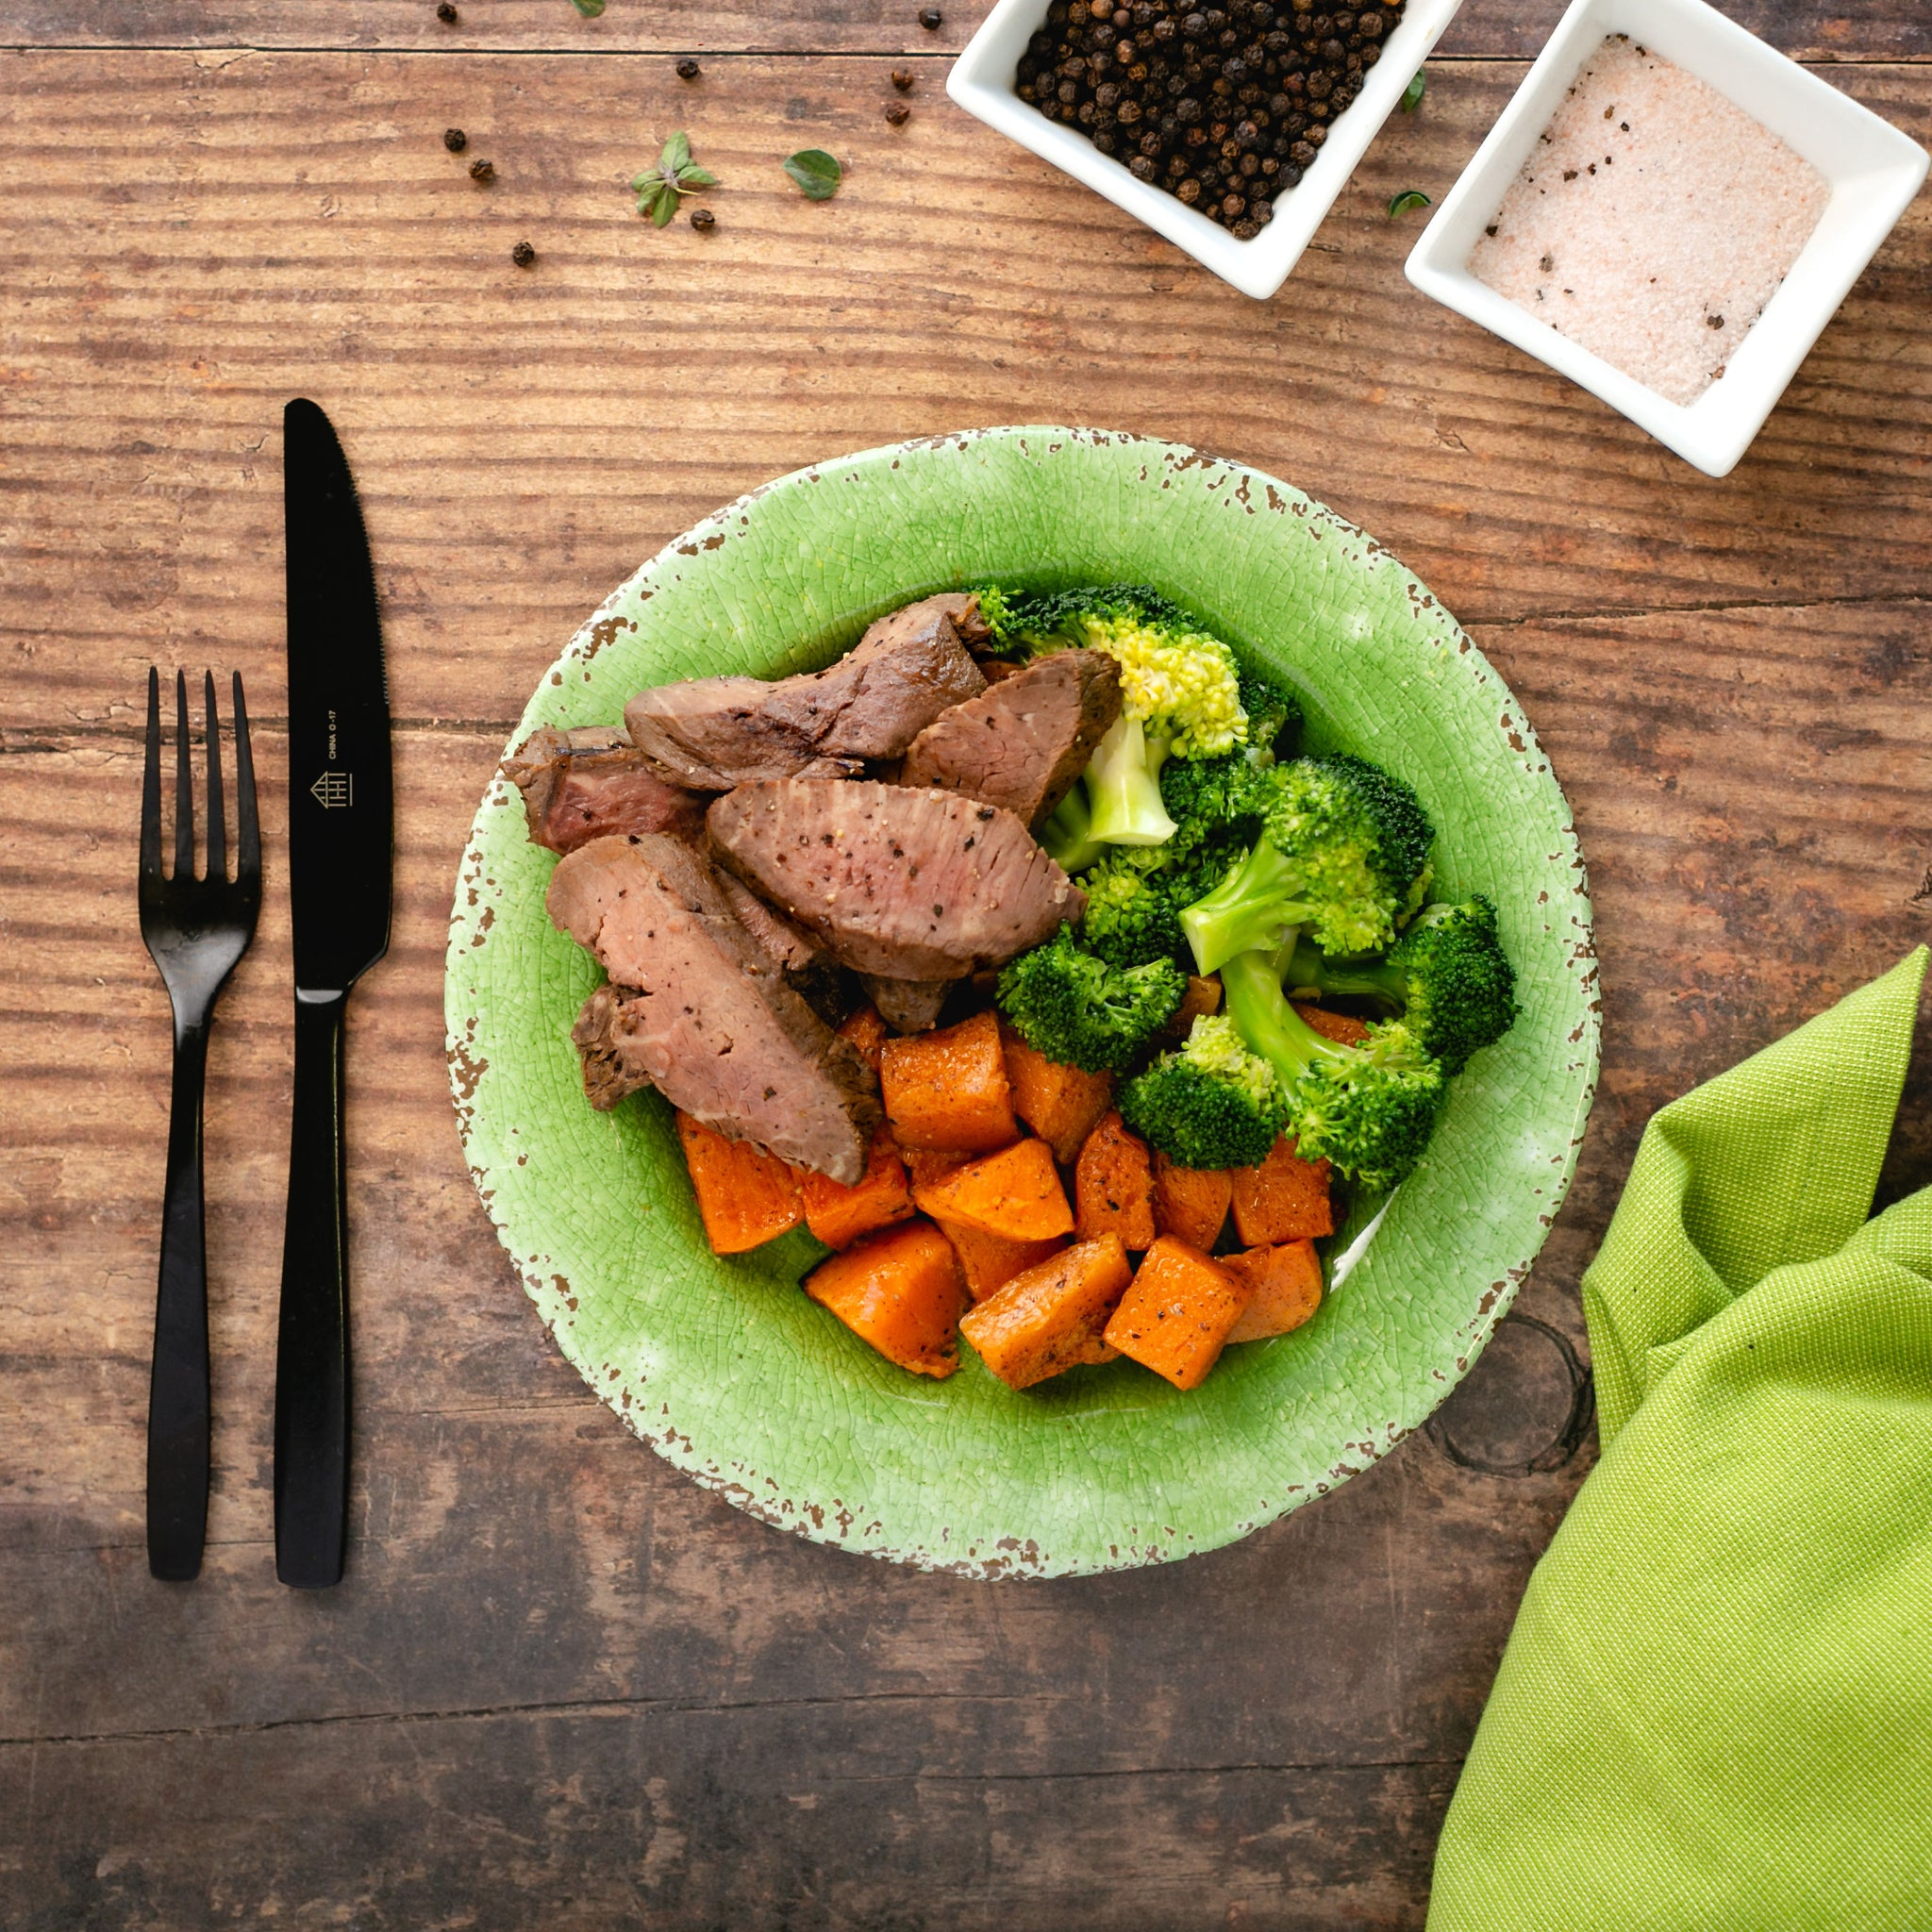 Steak, Sweet Potato, Broccoli